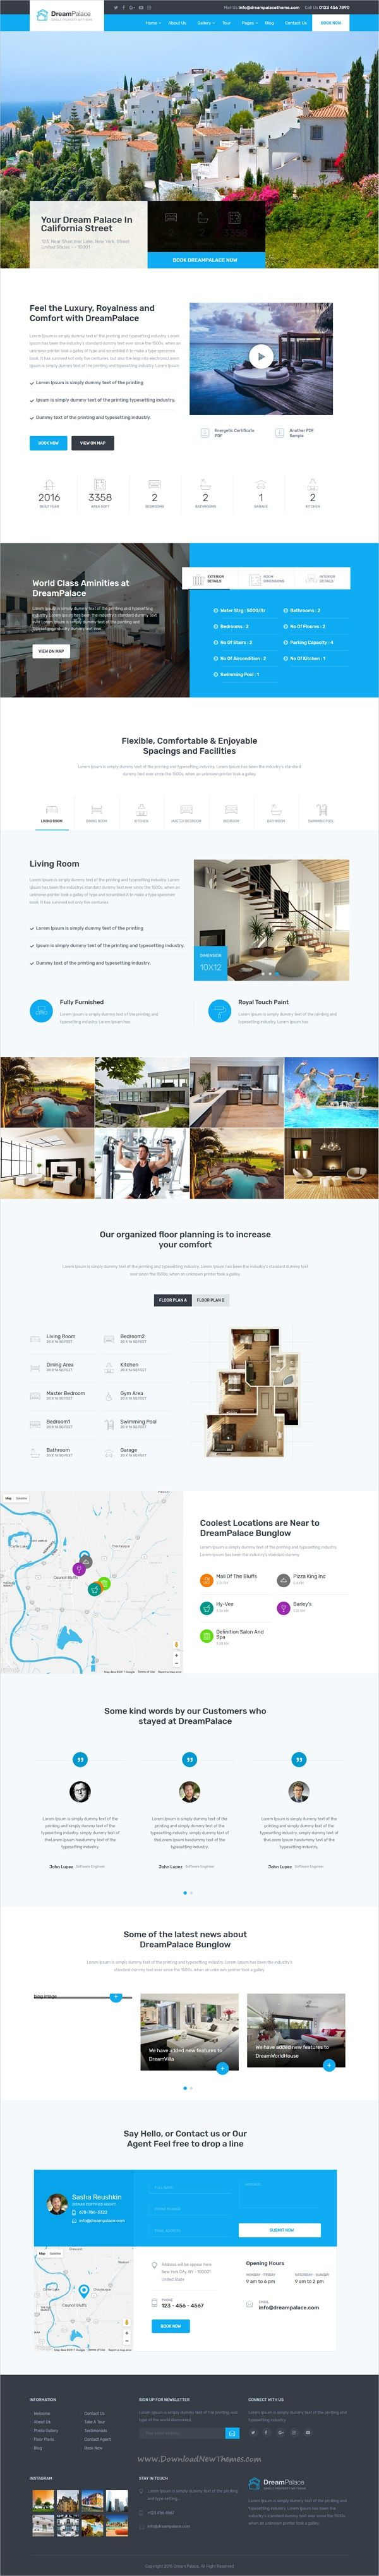 DreamPlace is a modern and trendy design 4in1 #WordPress theme for single #property real estate, #renting or selling #villa and apartments websites download now➩  https://themeforest.net/item/dreampalace-single-property-real-estate-theme/19193885?ref=Datasata